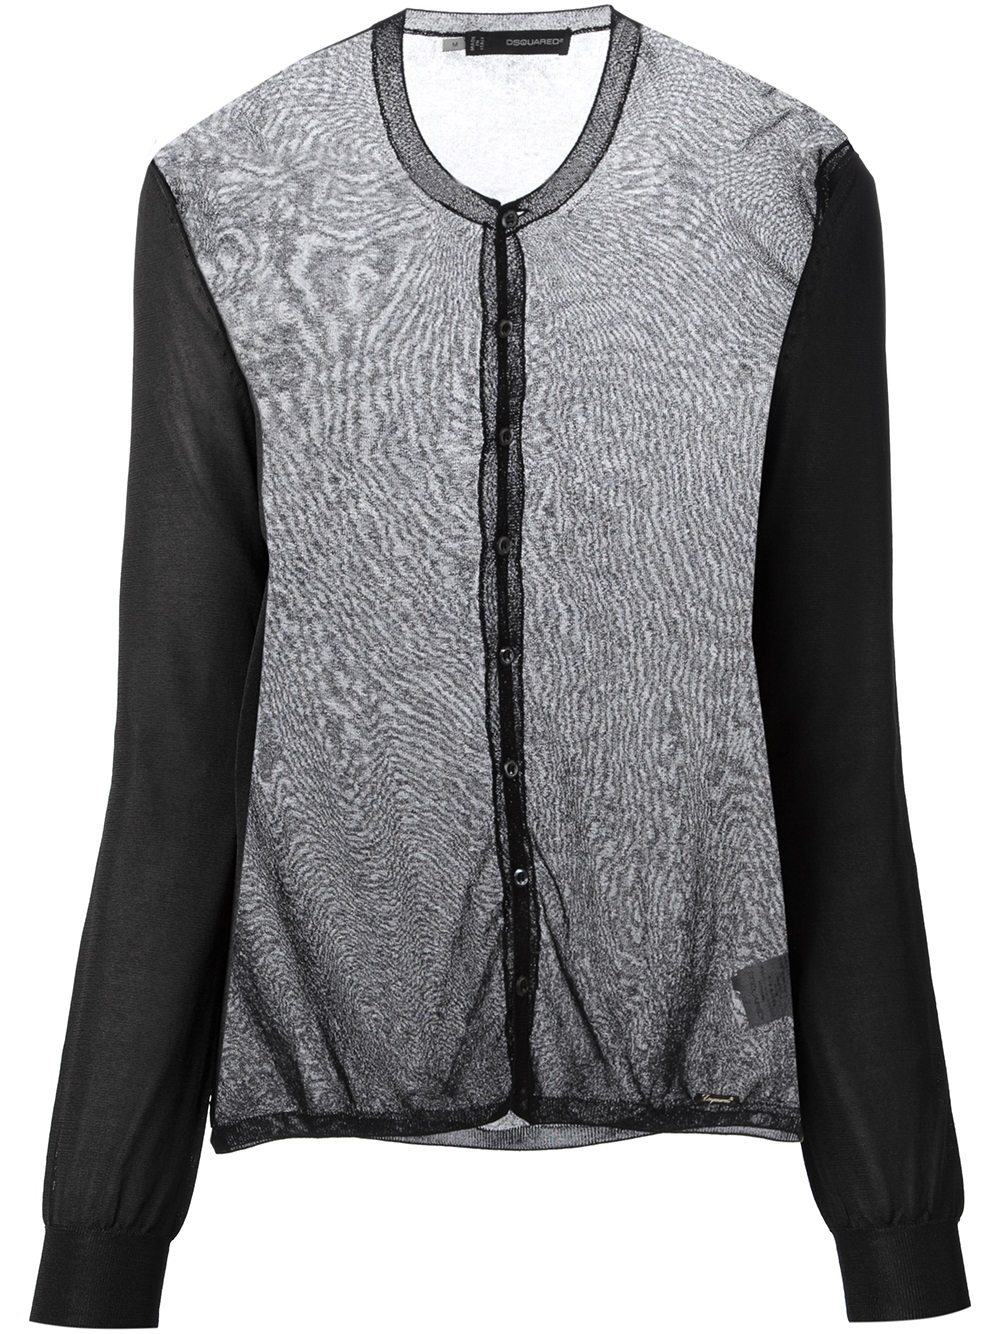 Dsquared² Sheer Cardigan in Black | Lyst